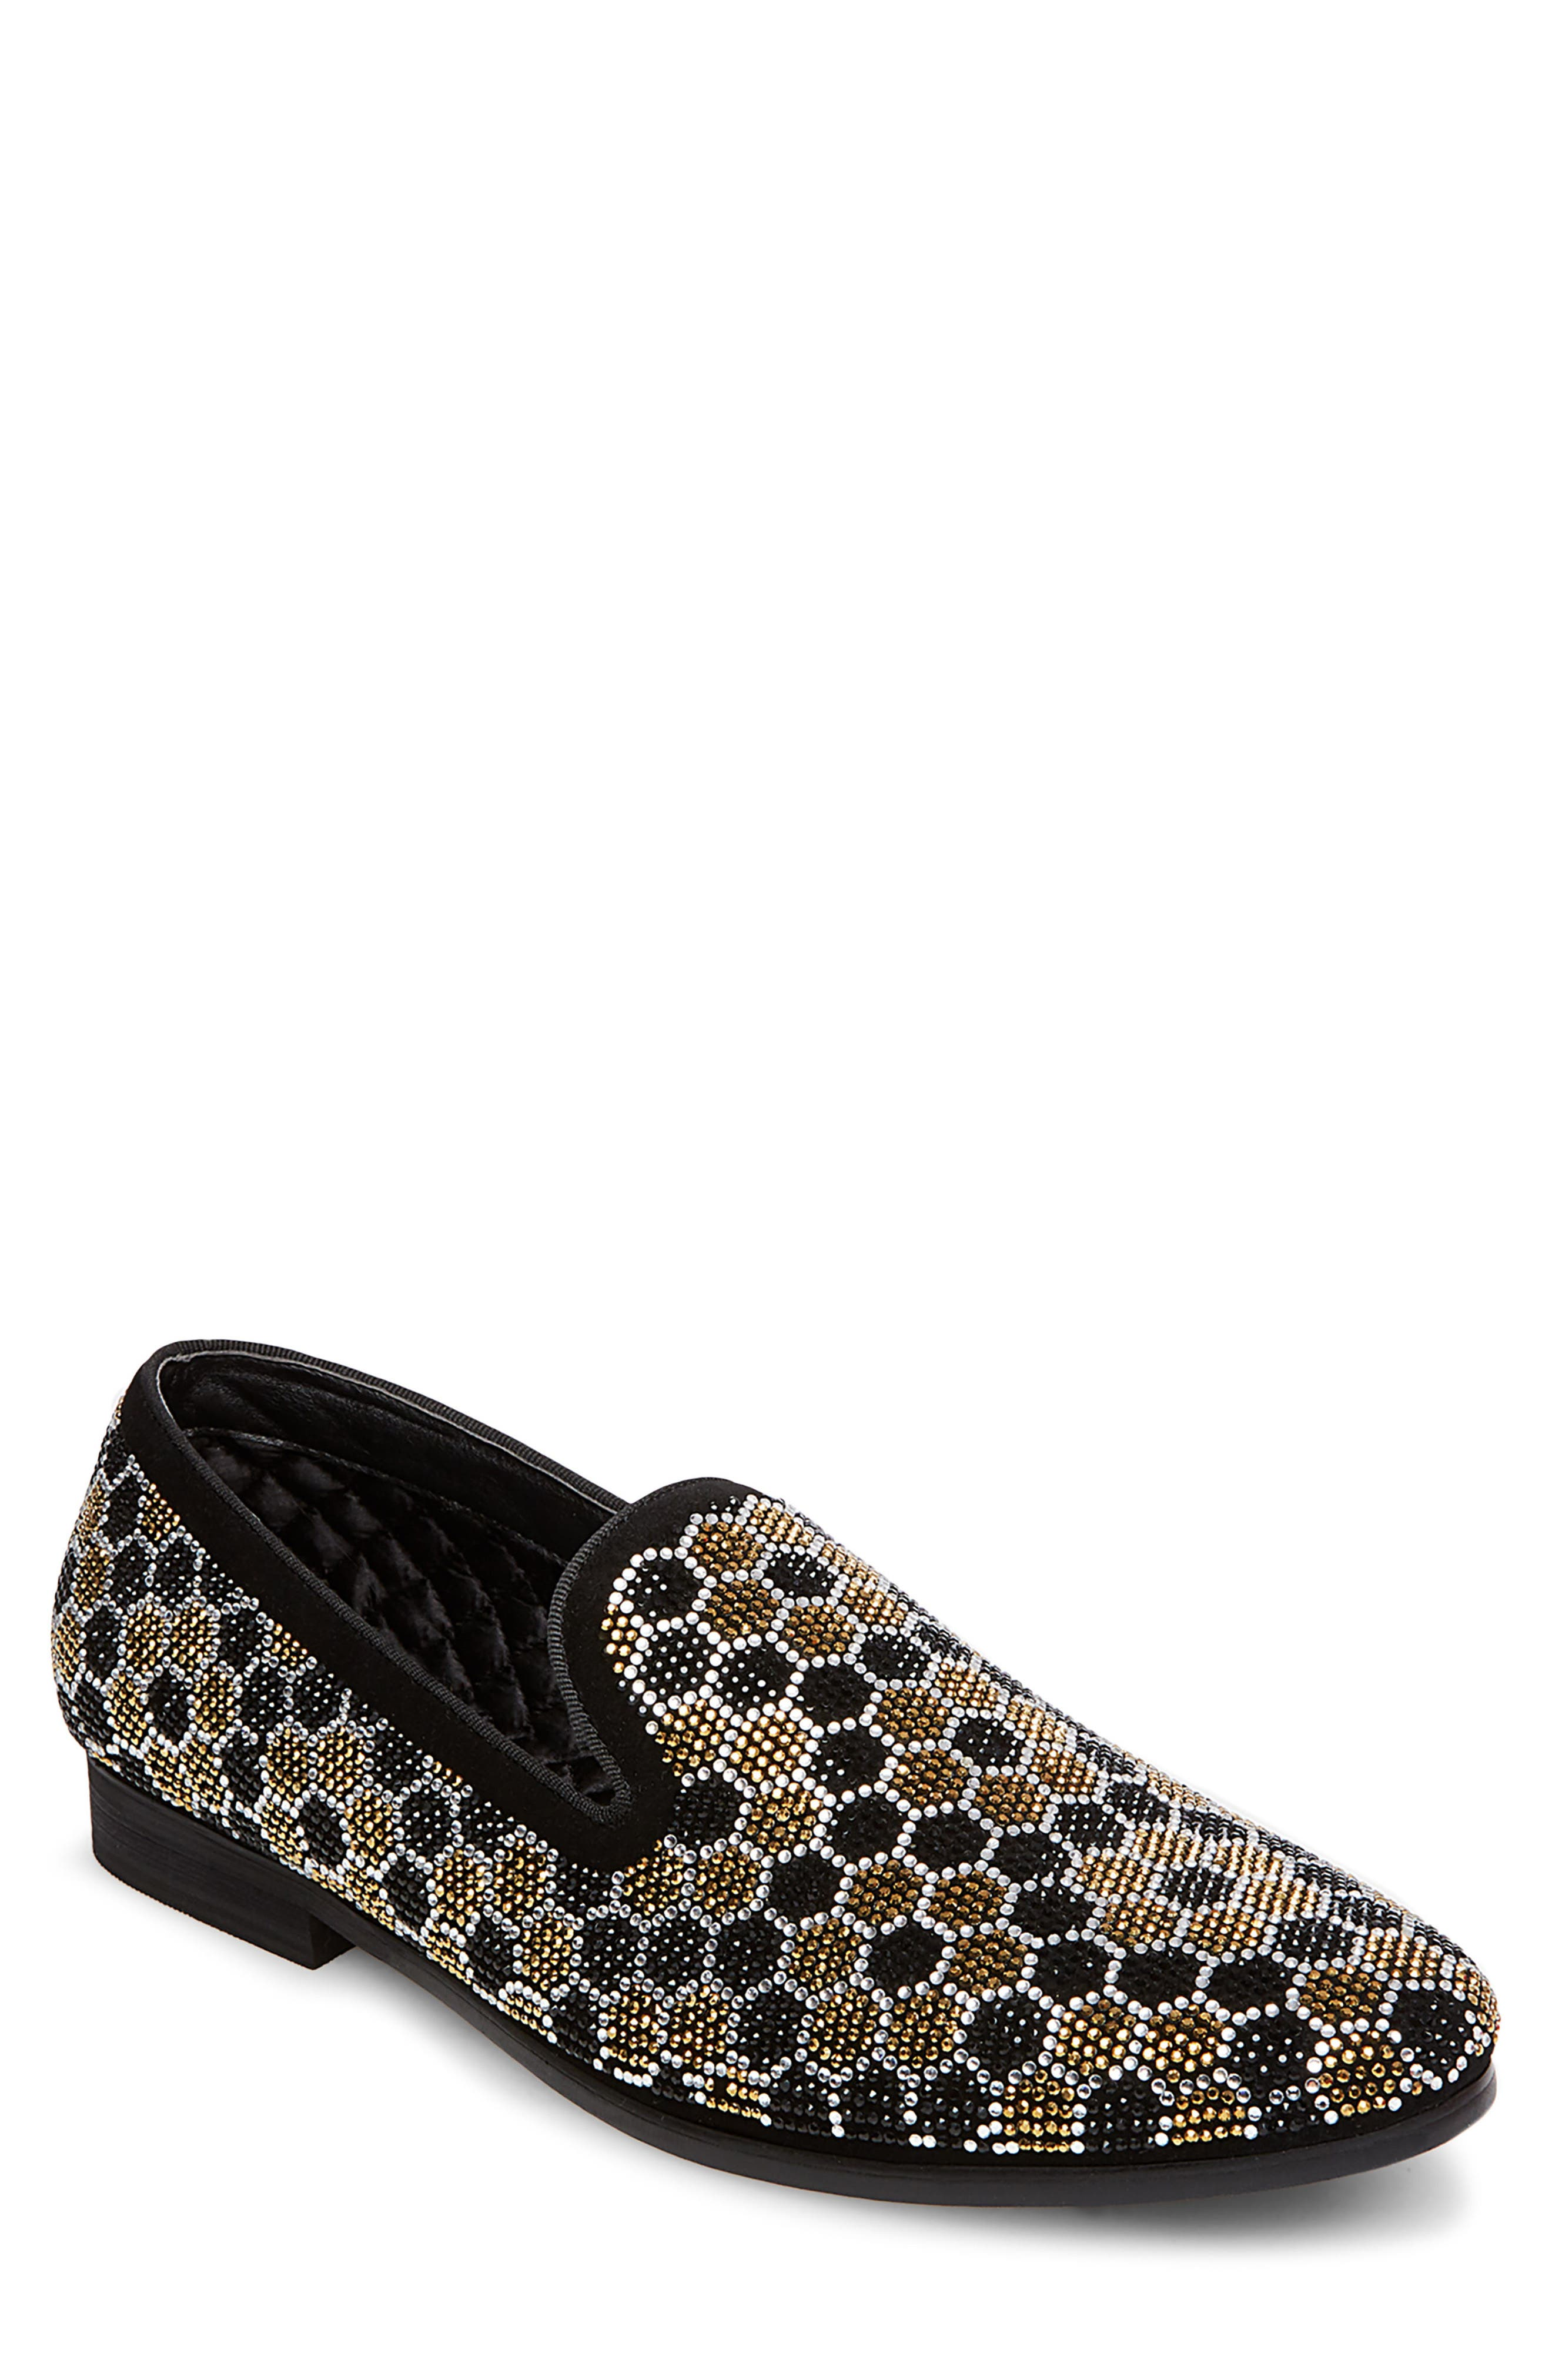 Caspian Studded Venetian Loafer,                             Main thumbnail 1, color,                             Black/ Gold